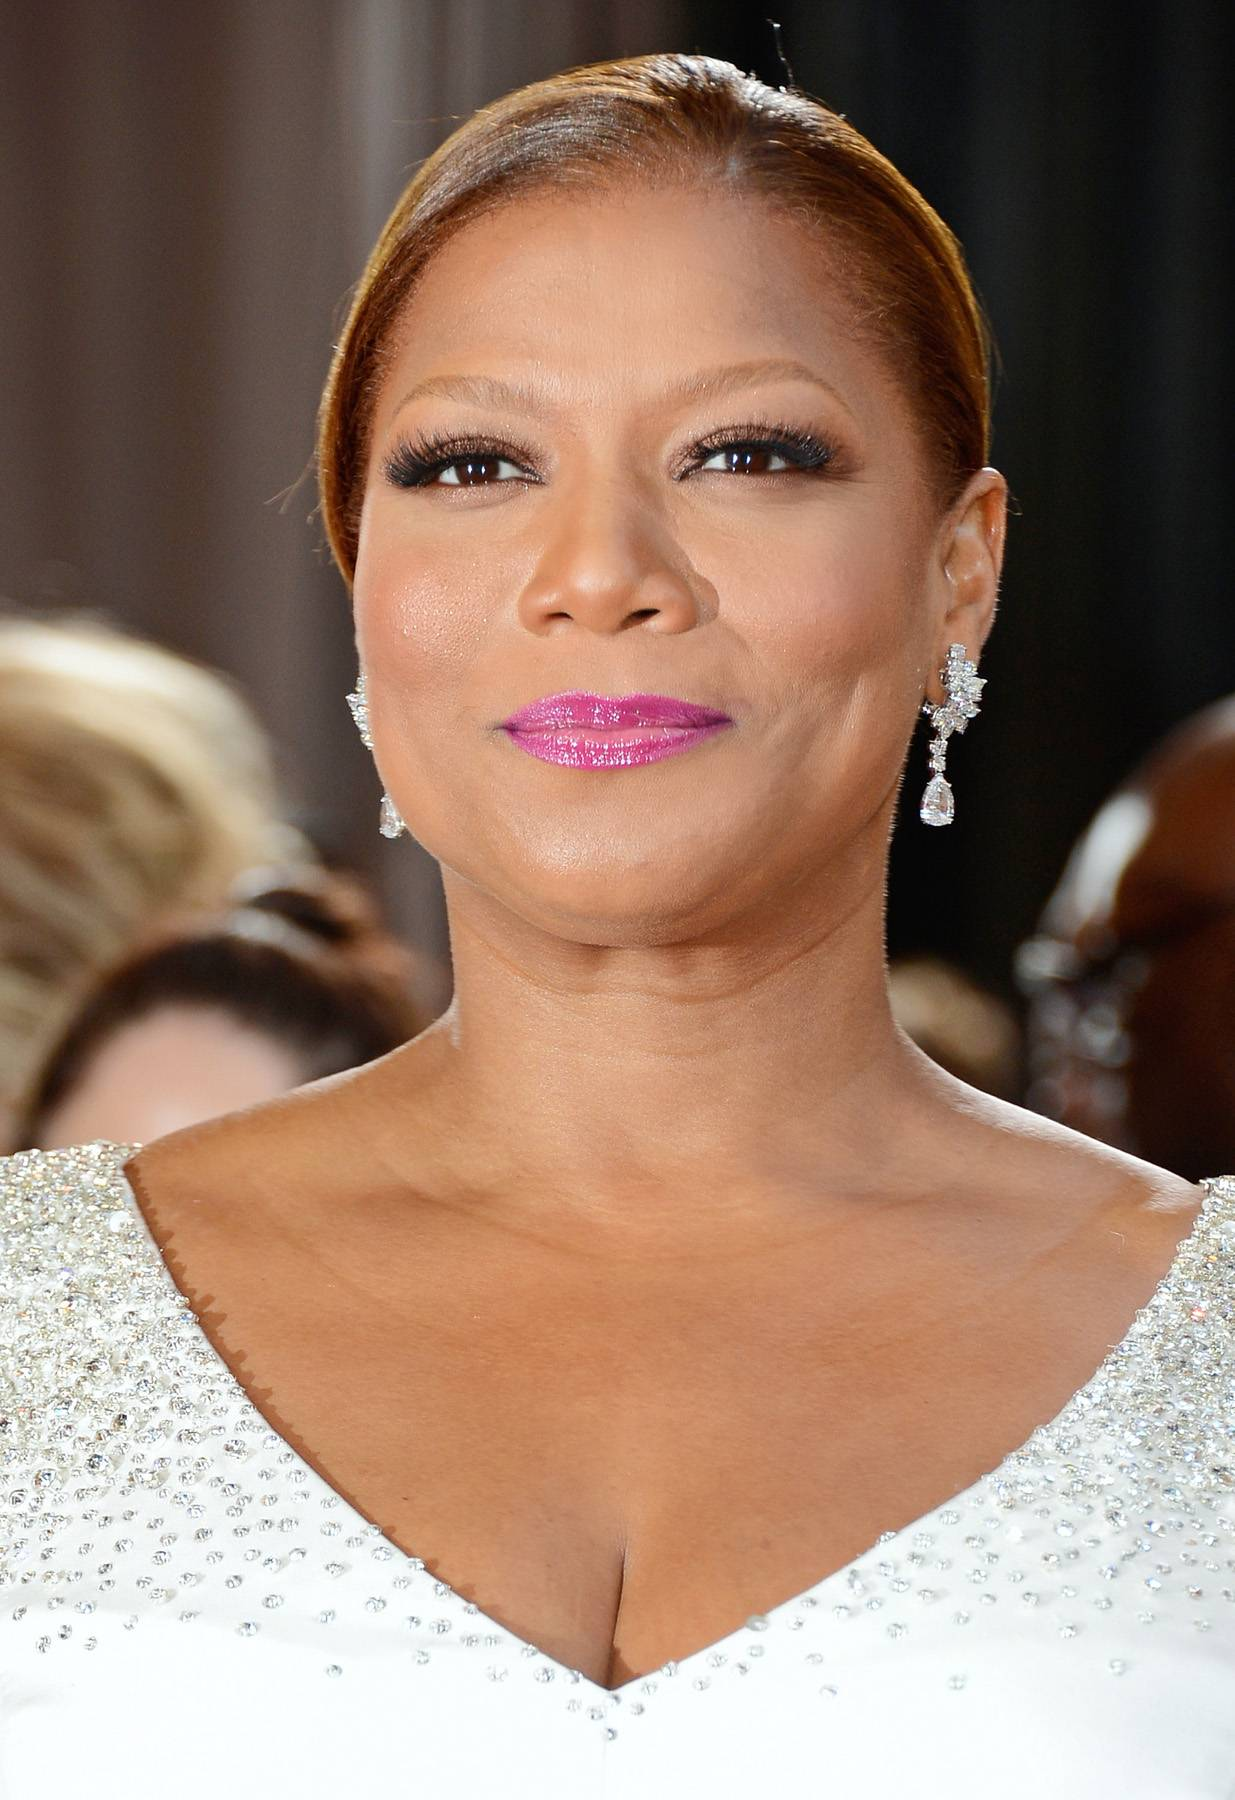 Queen Latifah - Queen Latifah performed at the Long Beach Lesbian, Gay, Bisexual and Transgender Pride Festival in California last June.(Photo: Frazer Harrison/Getty Images)